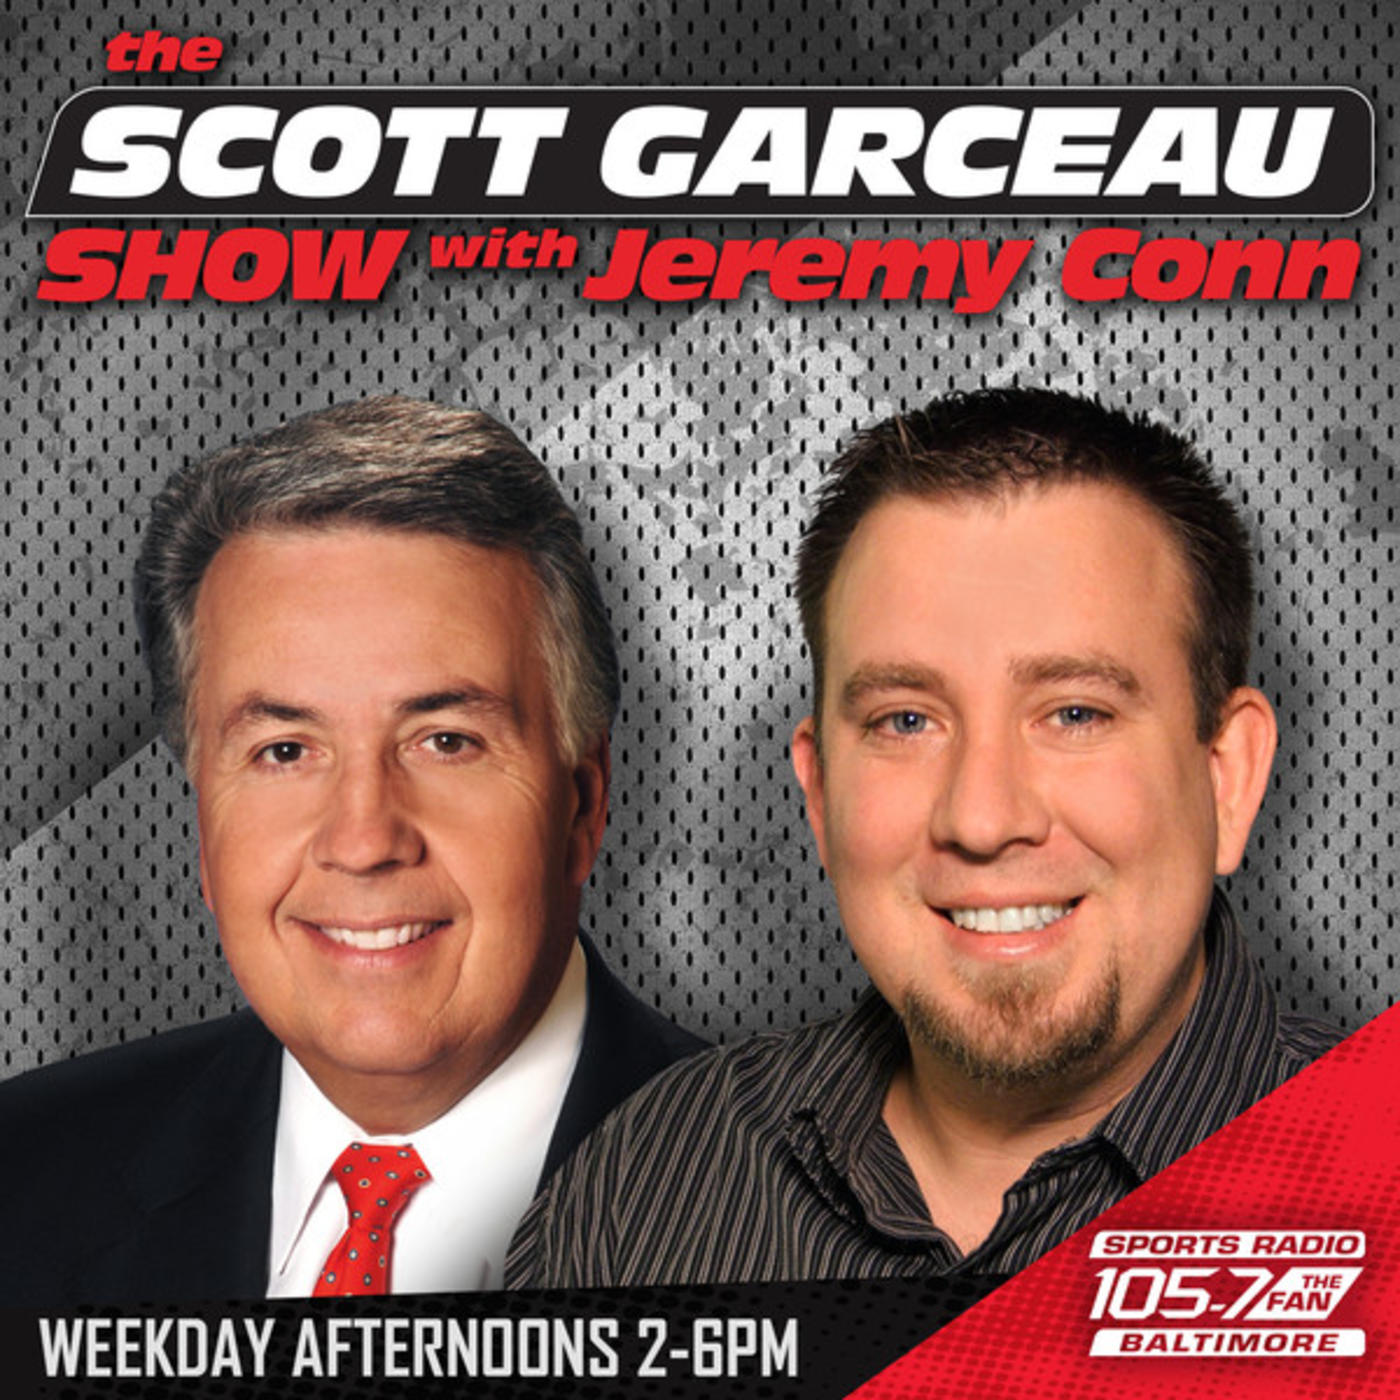 The Scott Garceau Show